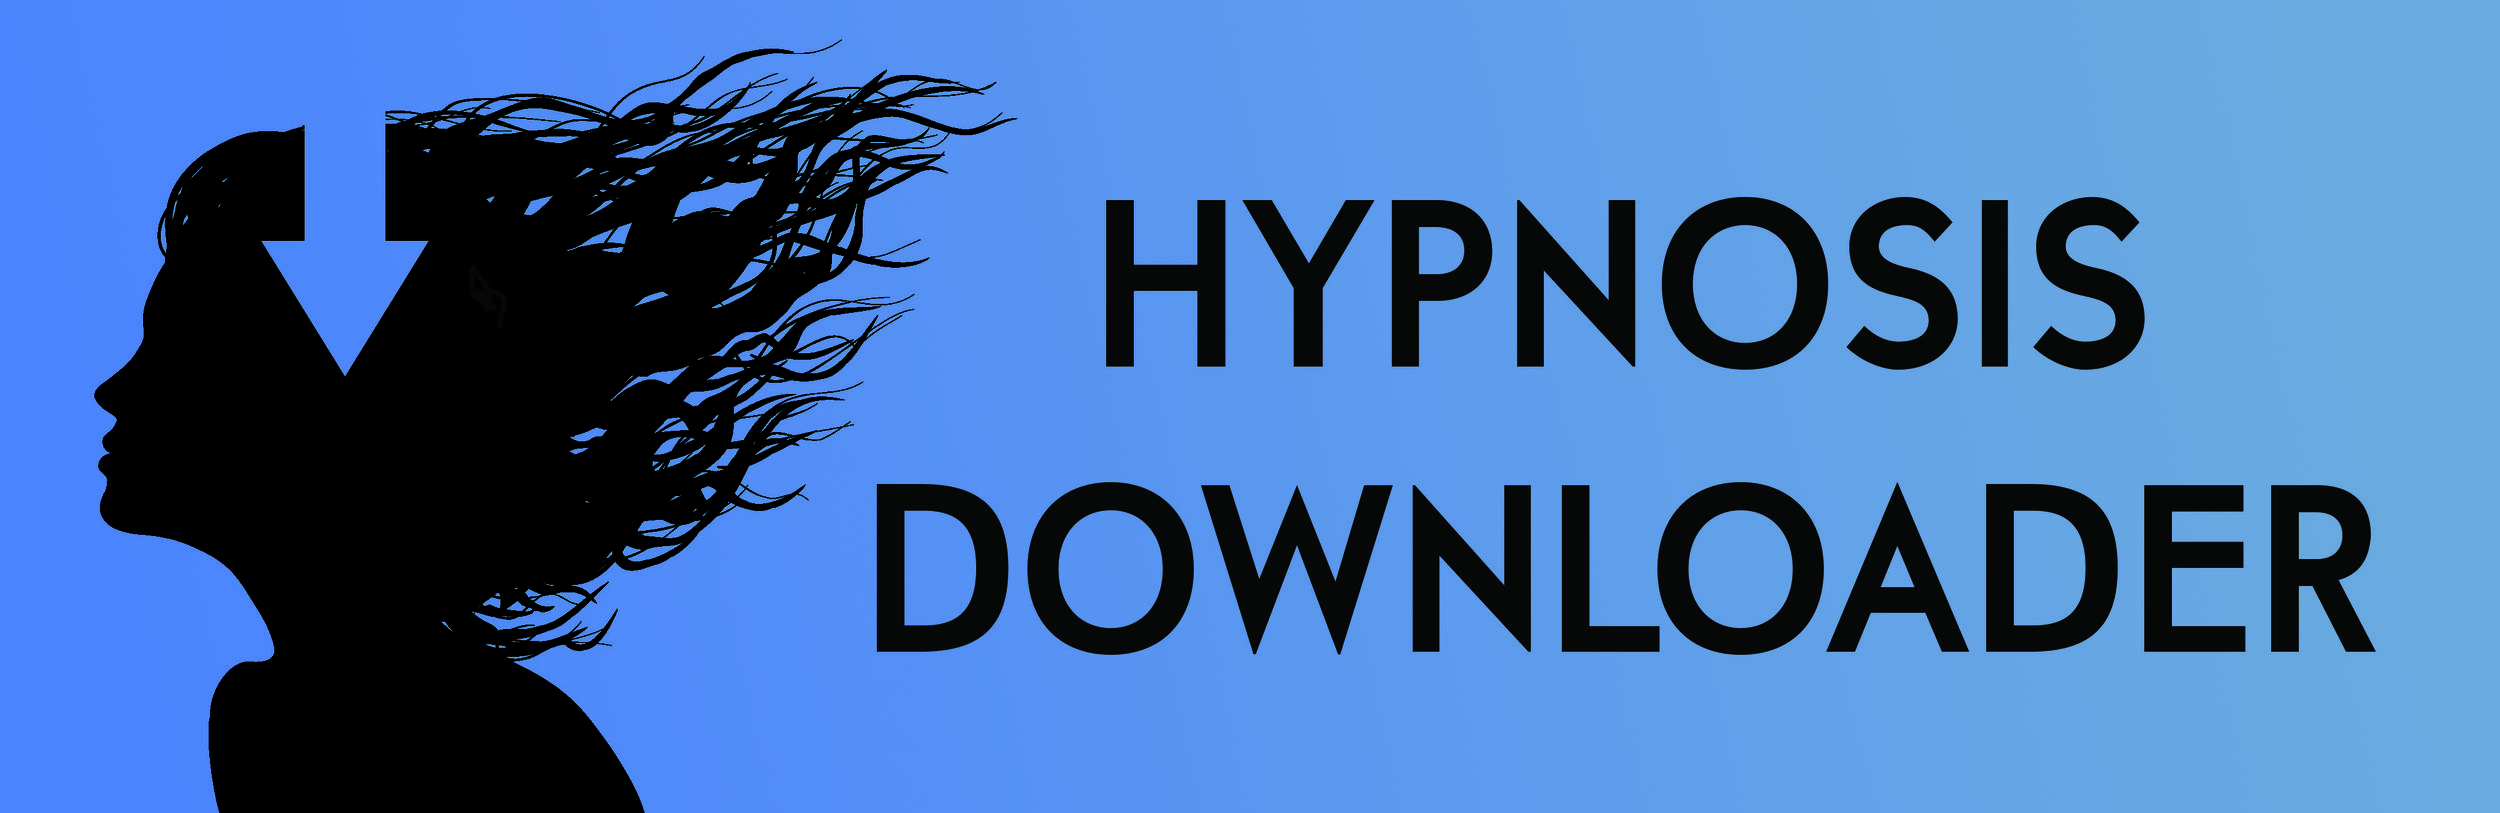 Hypnosis Downloader